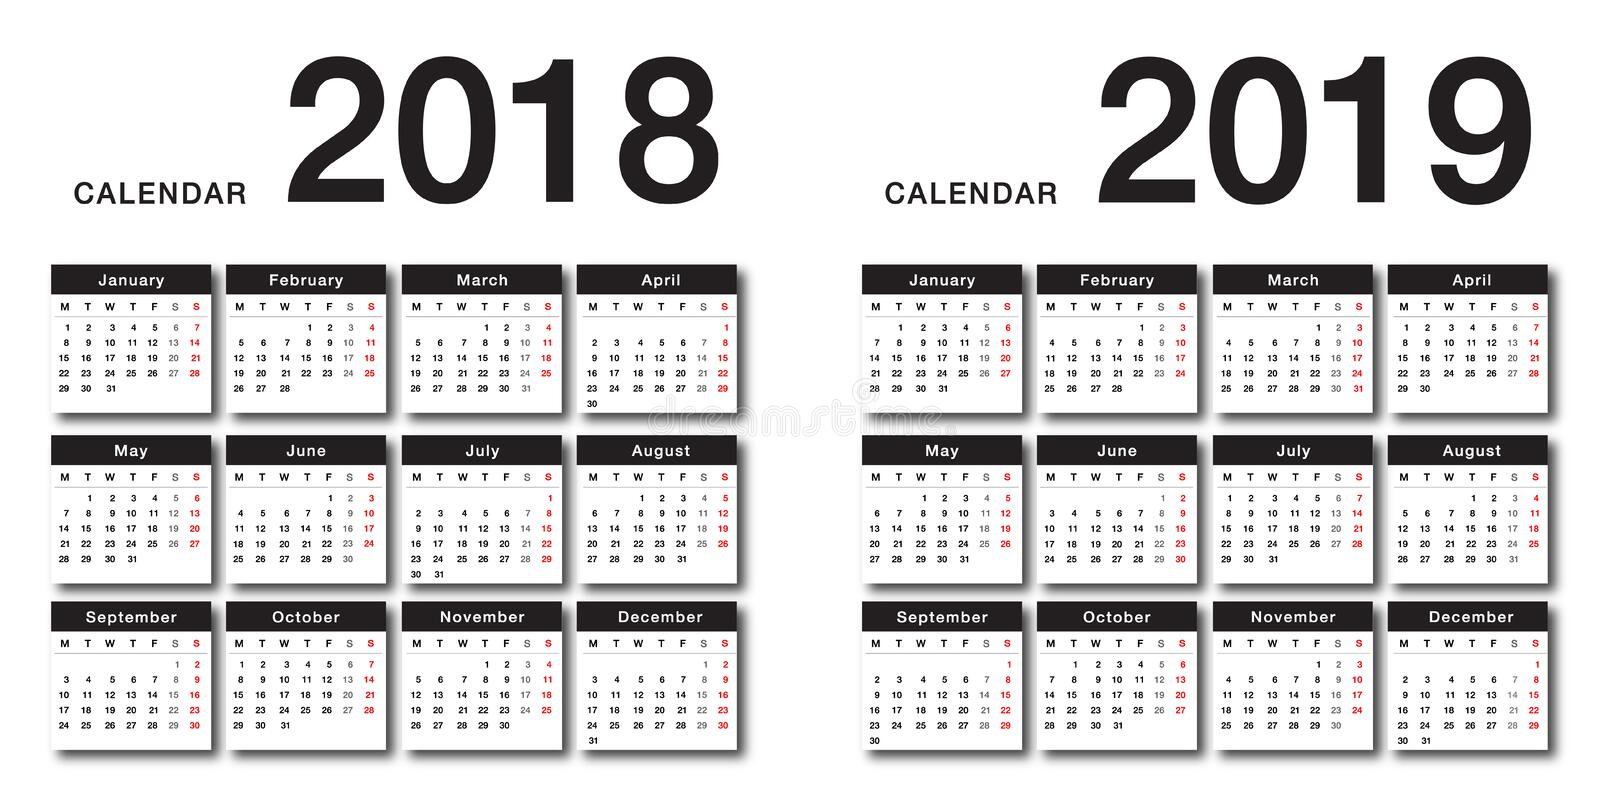 Year 2018 and Year 2019 calendar vector design template, simple and clean design. Calendar for 2018 and 2019 on White Background for organization and business vector illustration